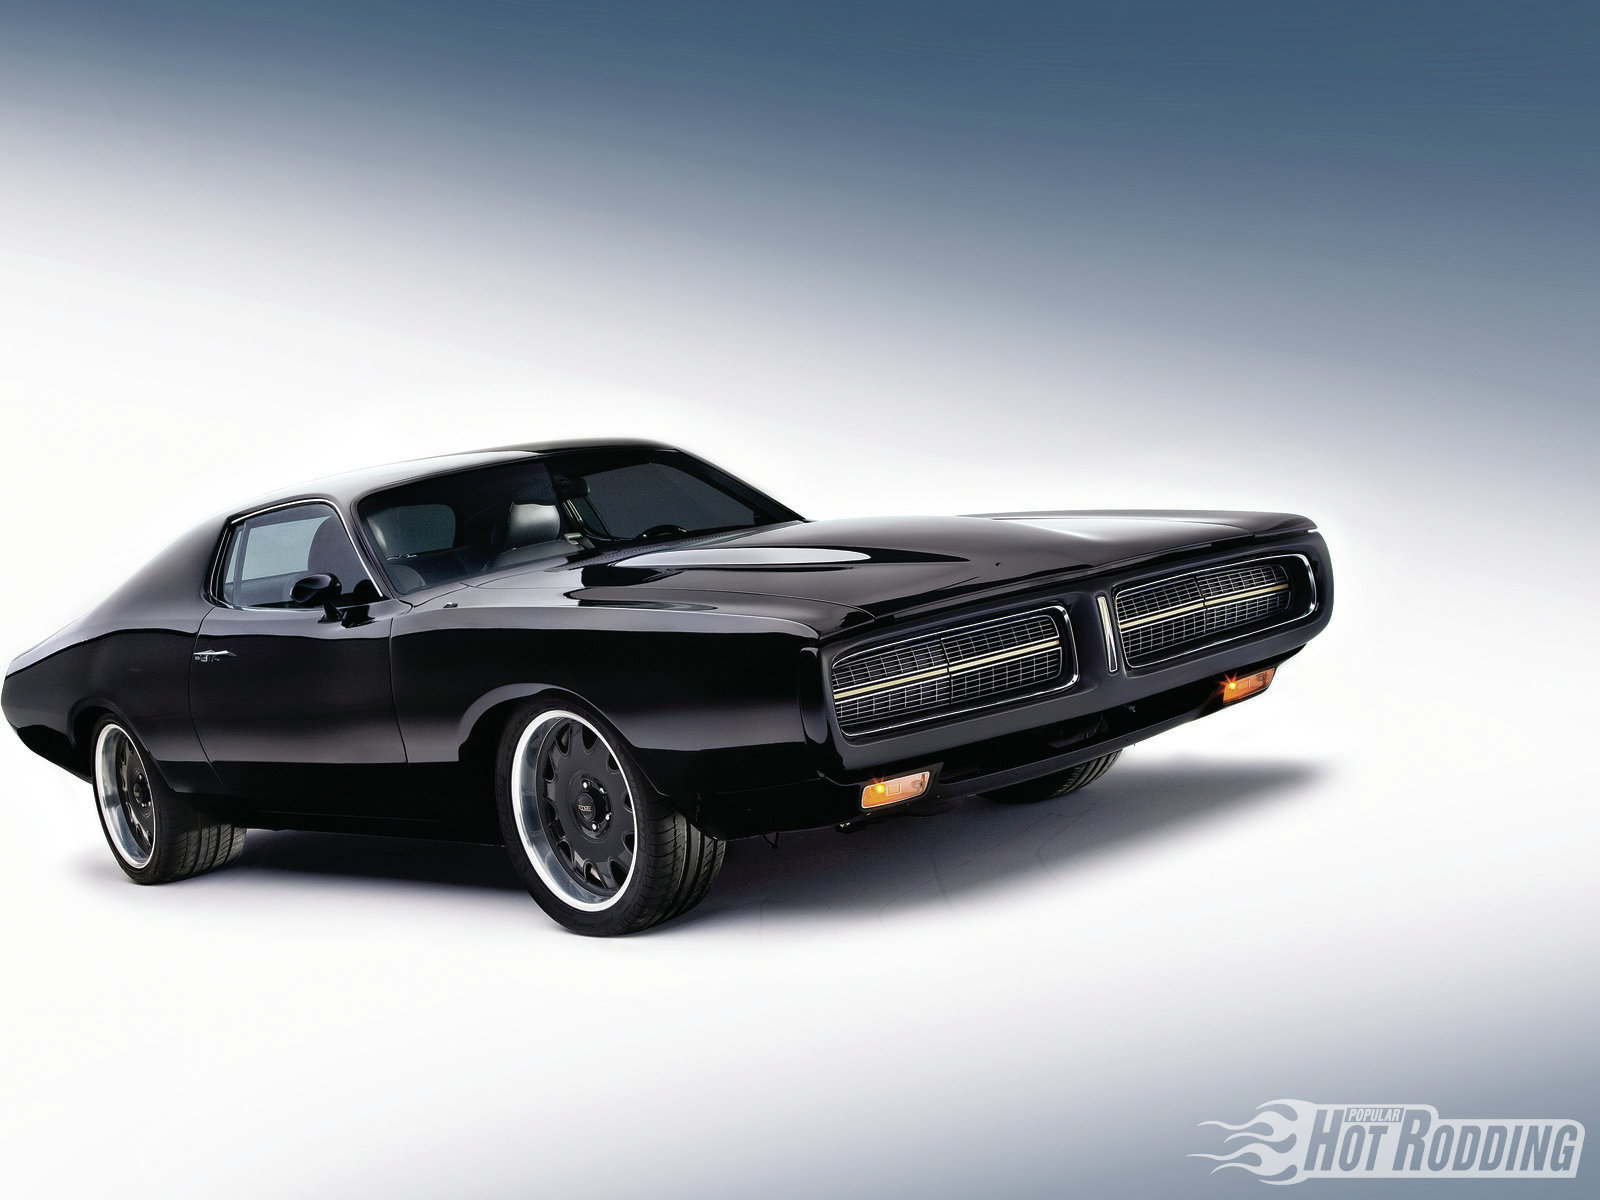 1971 Dodge Challenger 426 Hemi muscle Cars hot rods (3)